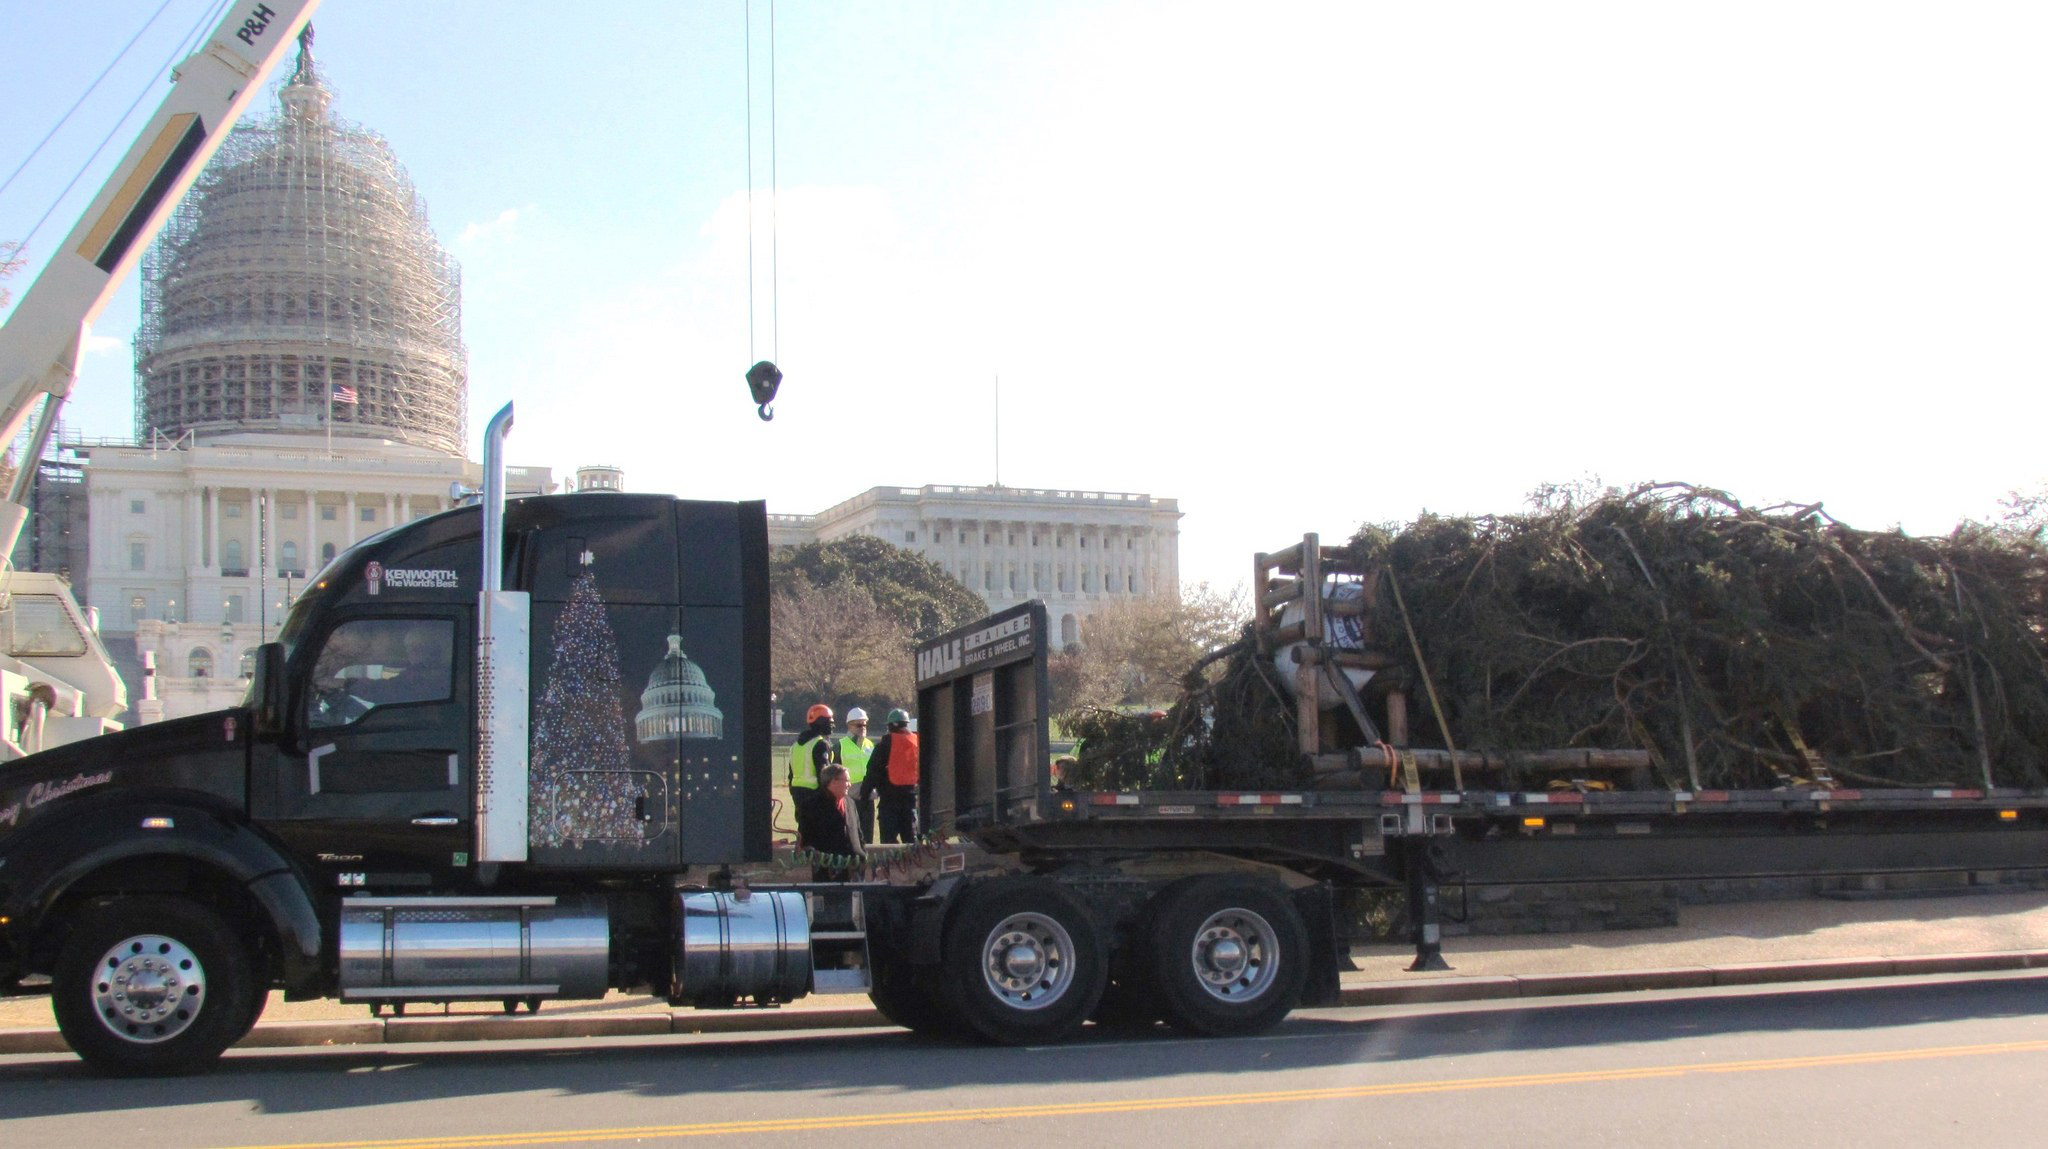 Capitol Christmas Tree delivered to D.C. after trucking-sponsored 2,700-mile trip